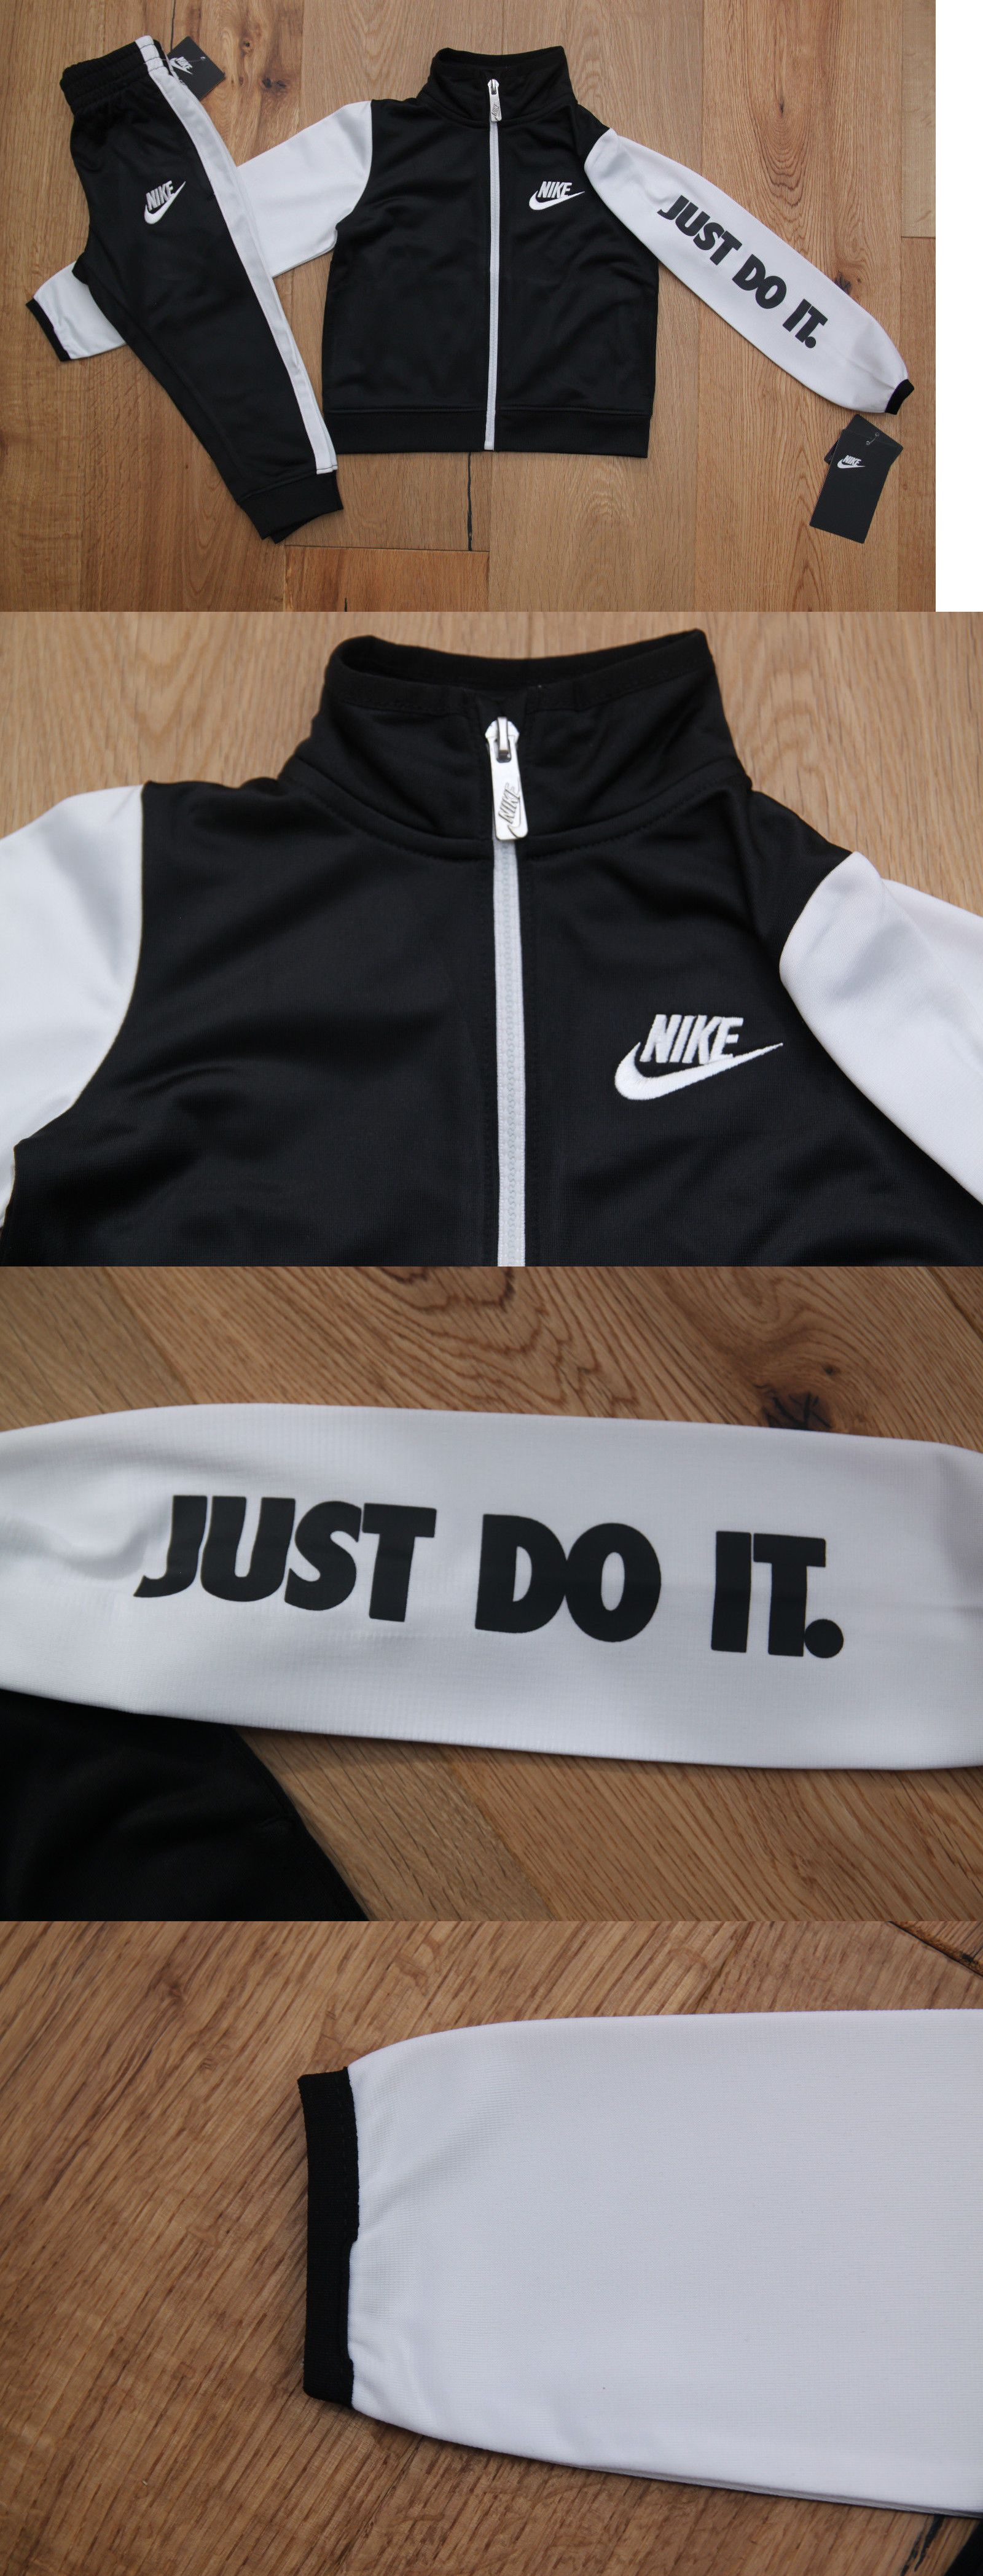 a340d73a394 ... Outfits and Sets 147333 Nike Toddler Boy 2 Piece Jogging Set ~ Tracksuit  ~ Black ...